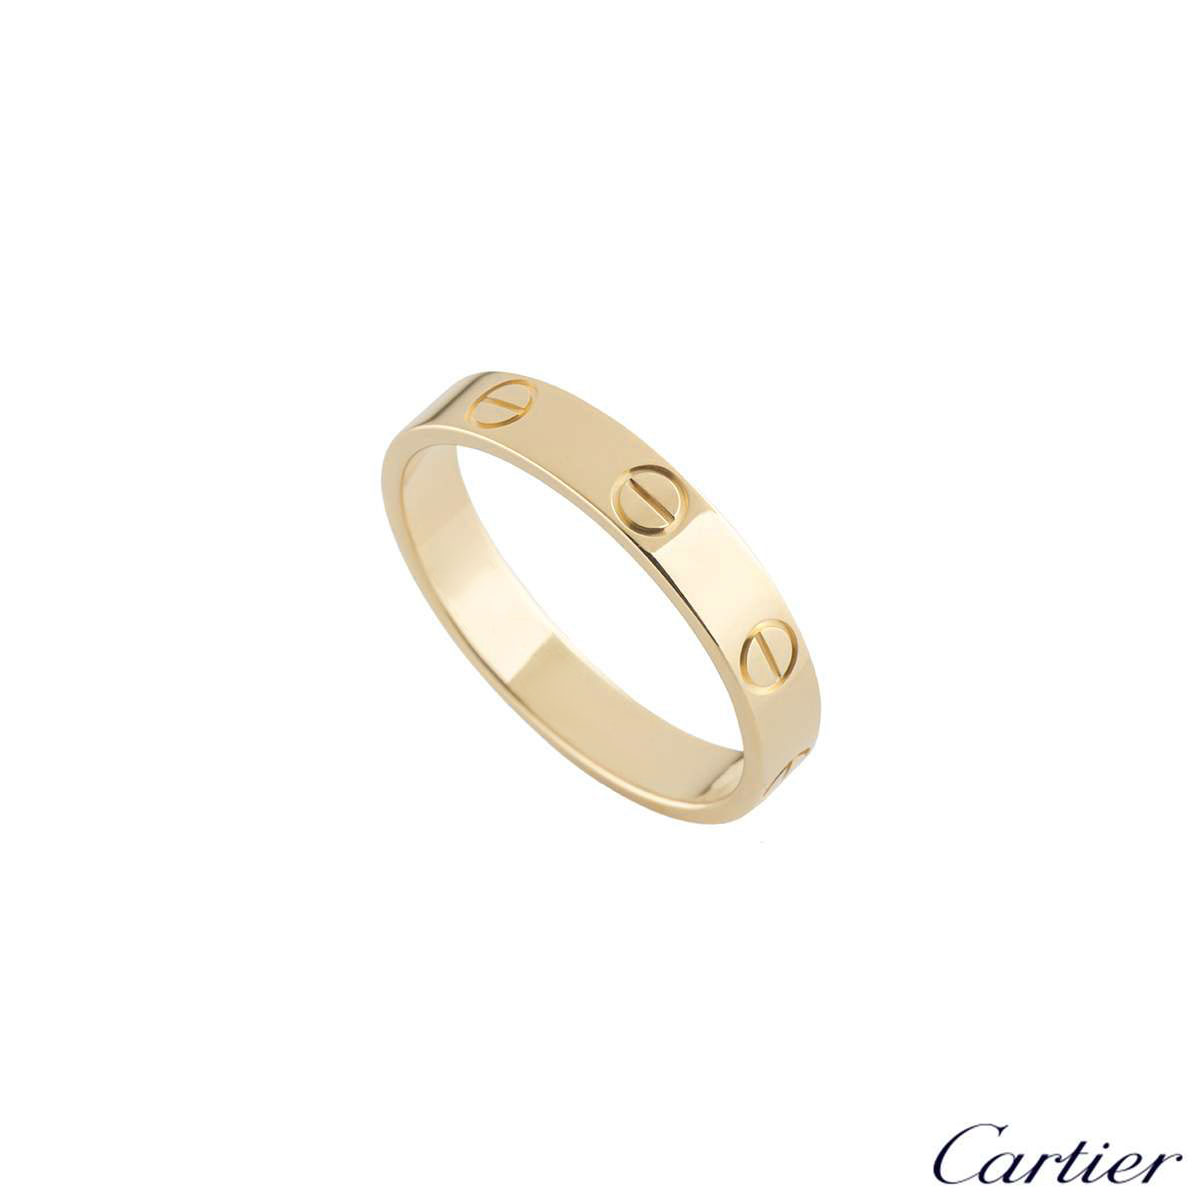 Cartier Yellow Gold Plain Love Wedding Band Ring 51 B4085051